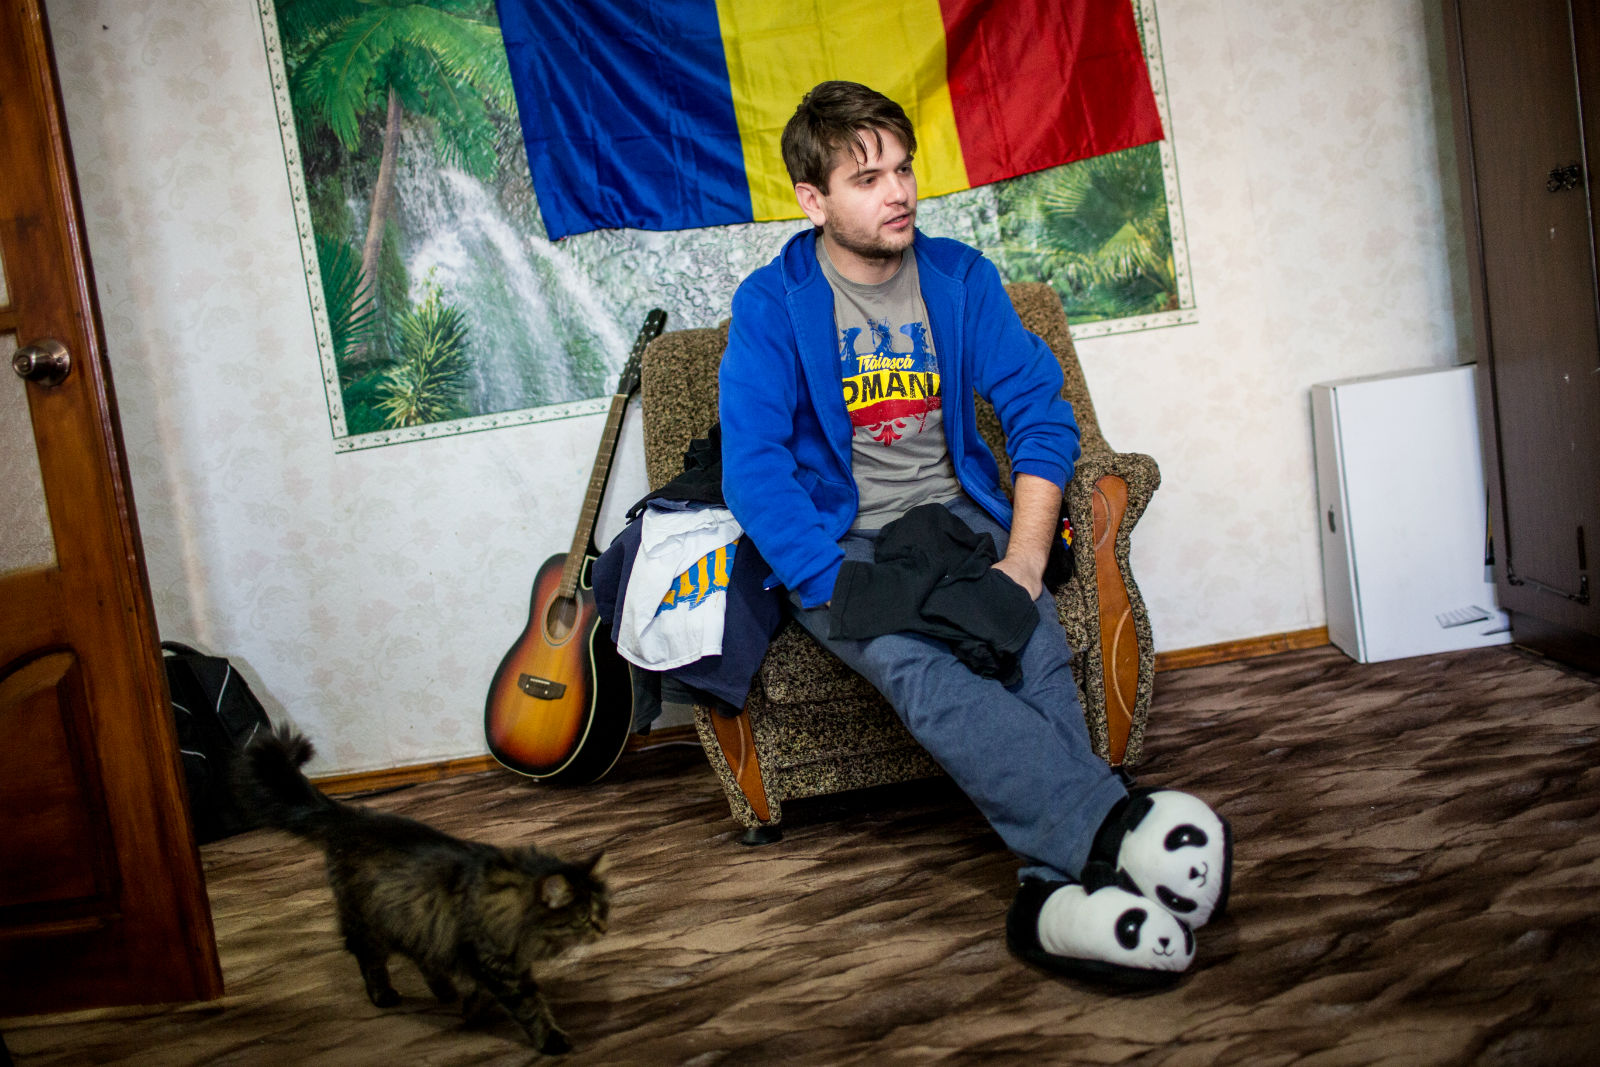 Anatol Ursu, the leader of the unionist organization Youth of Moldova, in his apartment in the suburbs of Chișinău.